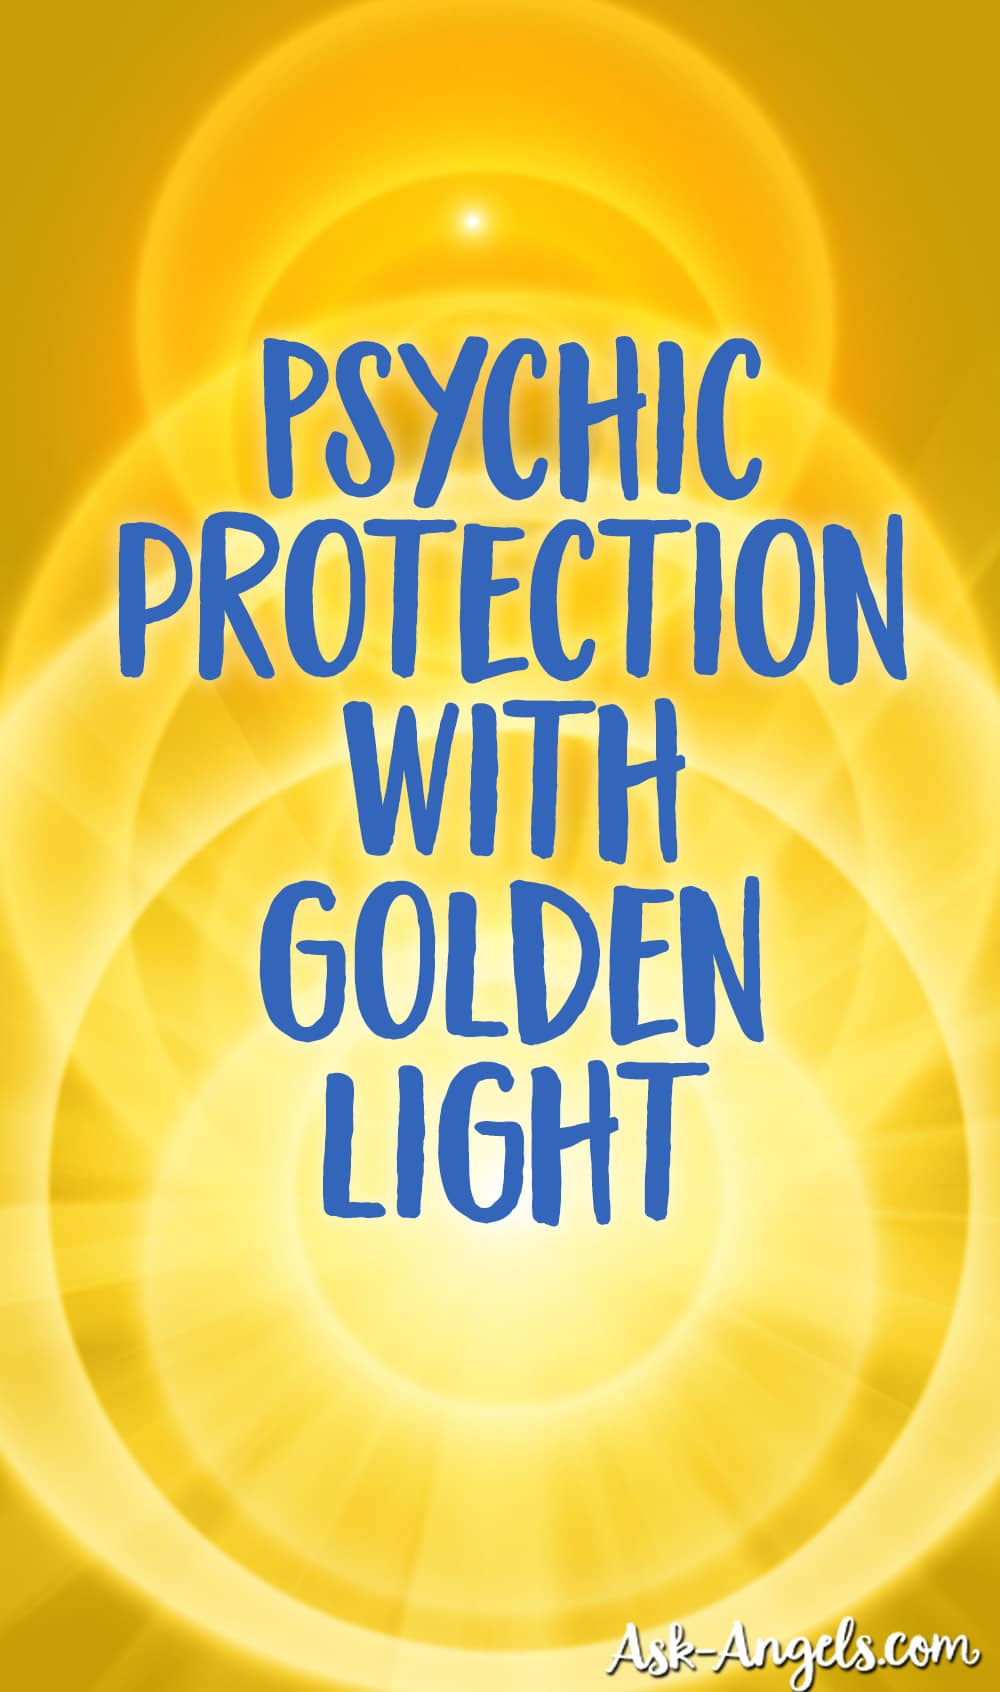 Psychic Protection with Golden Light